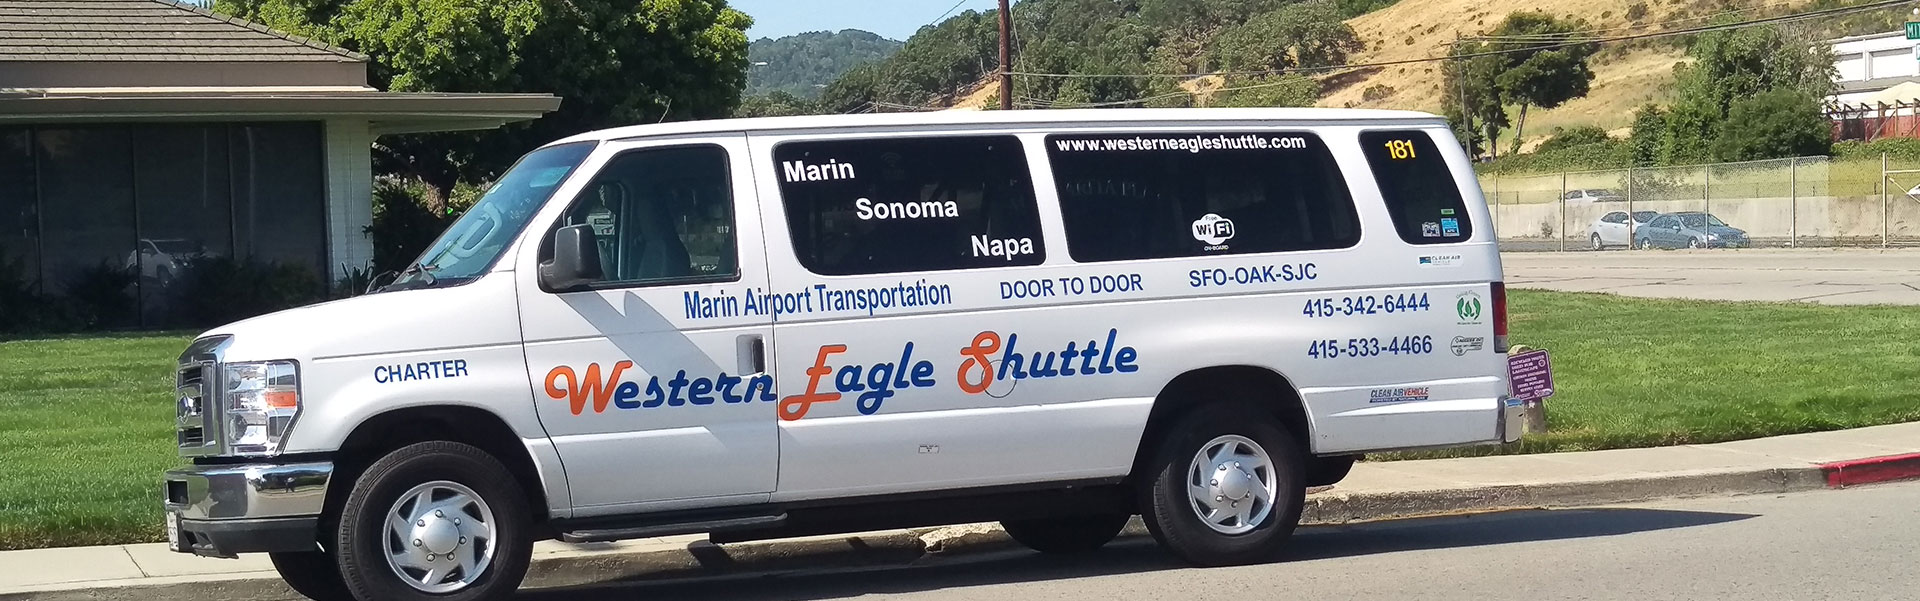 Marin Airport Transportation North Bay Shuttle Charter